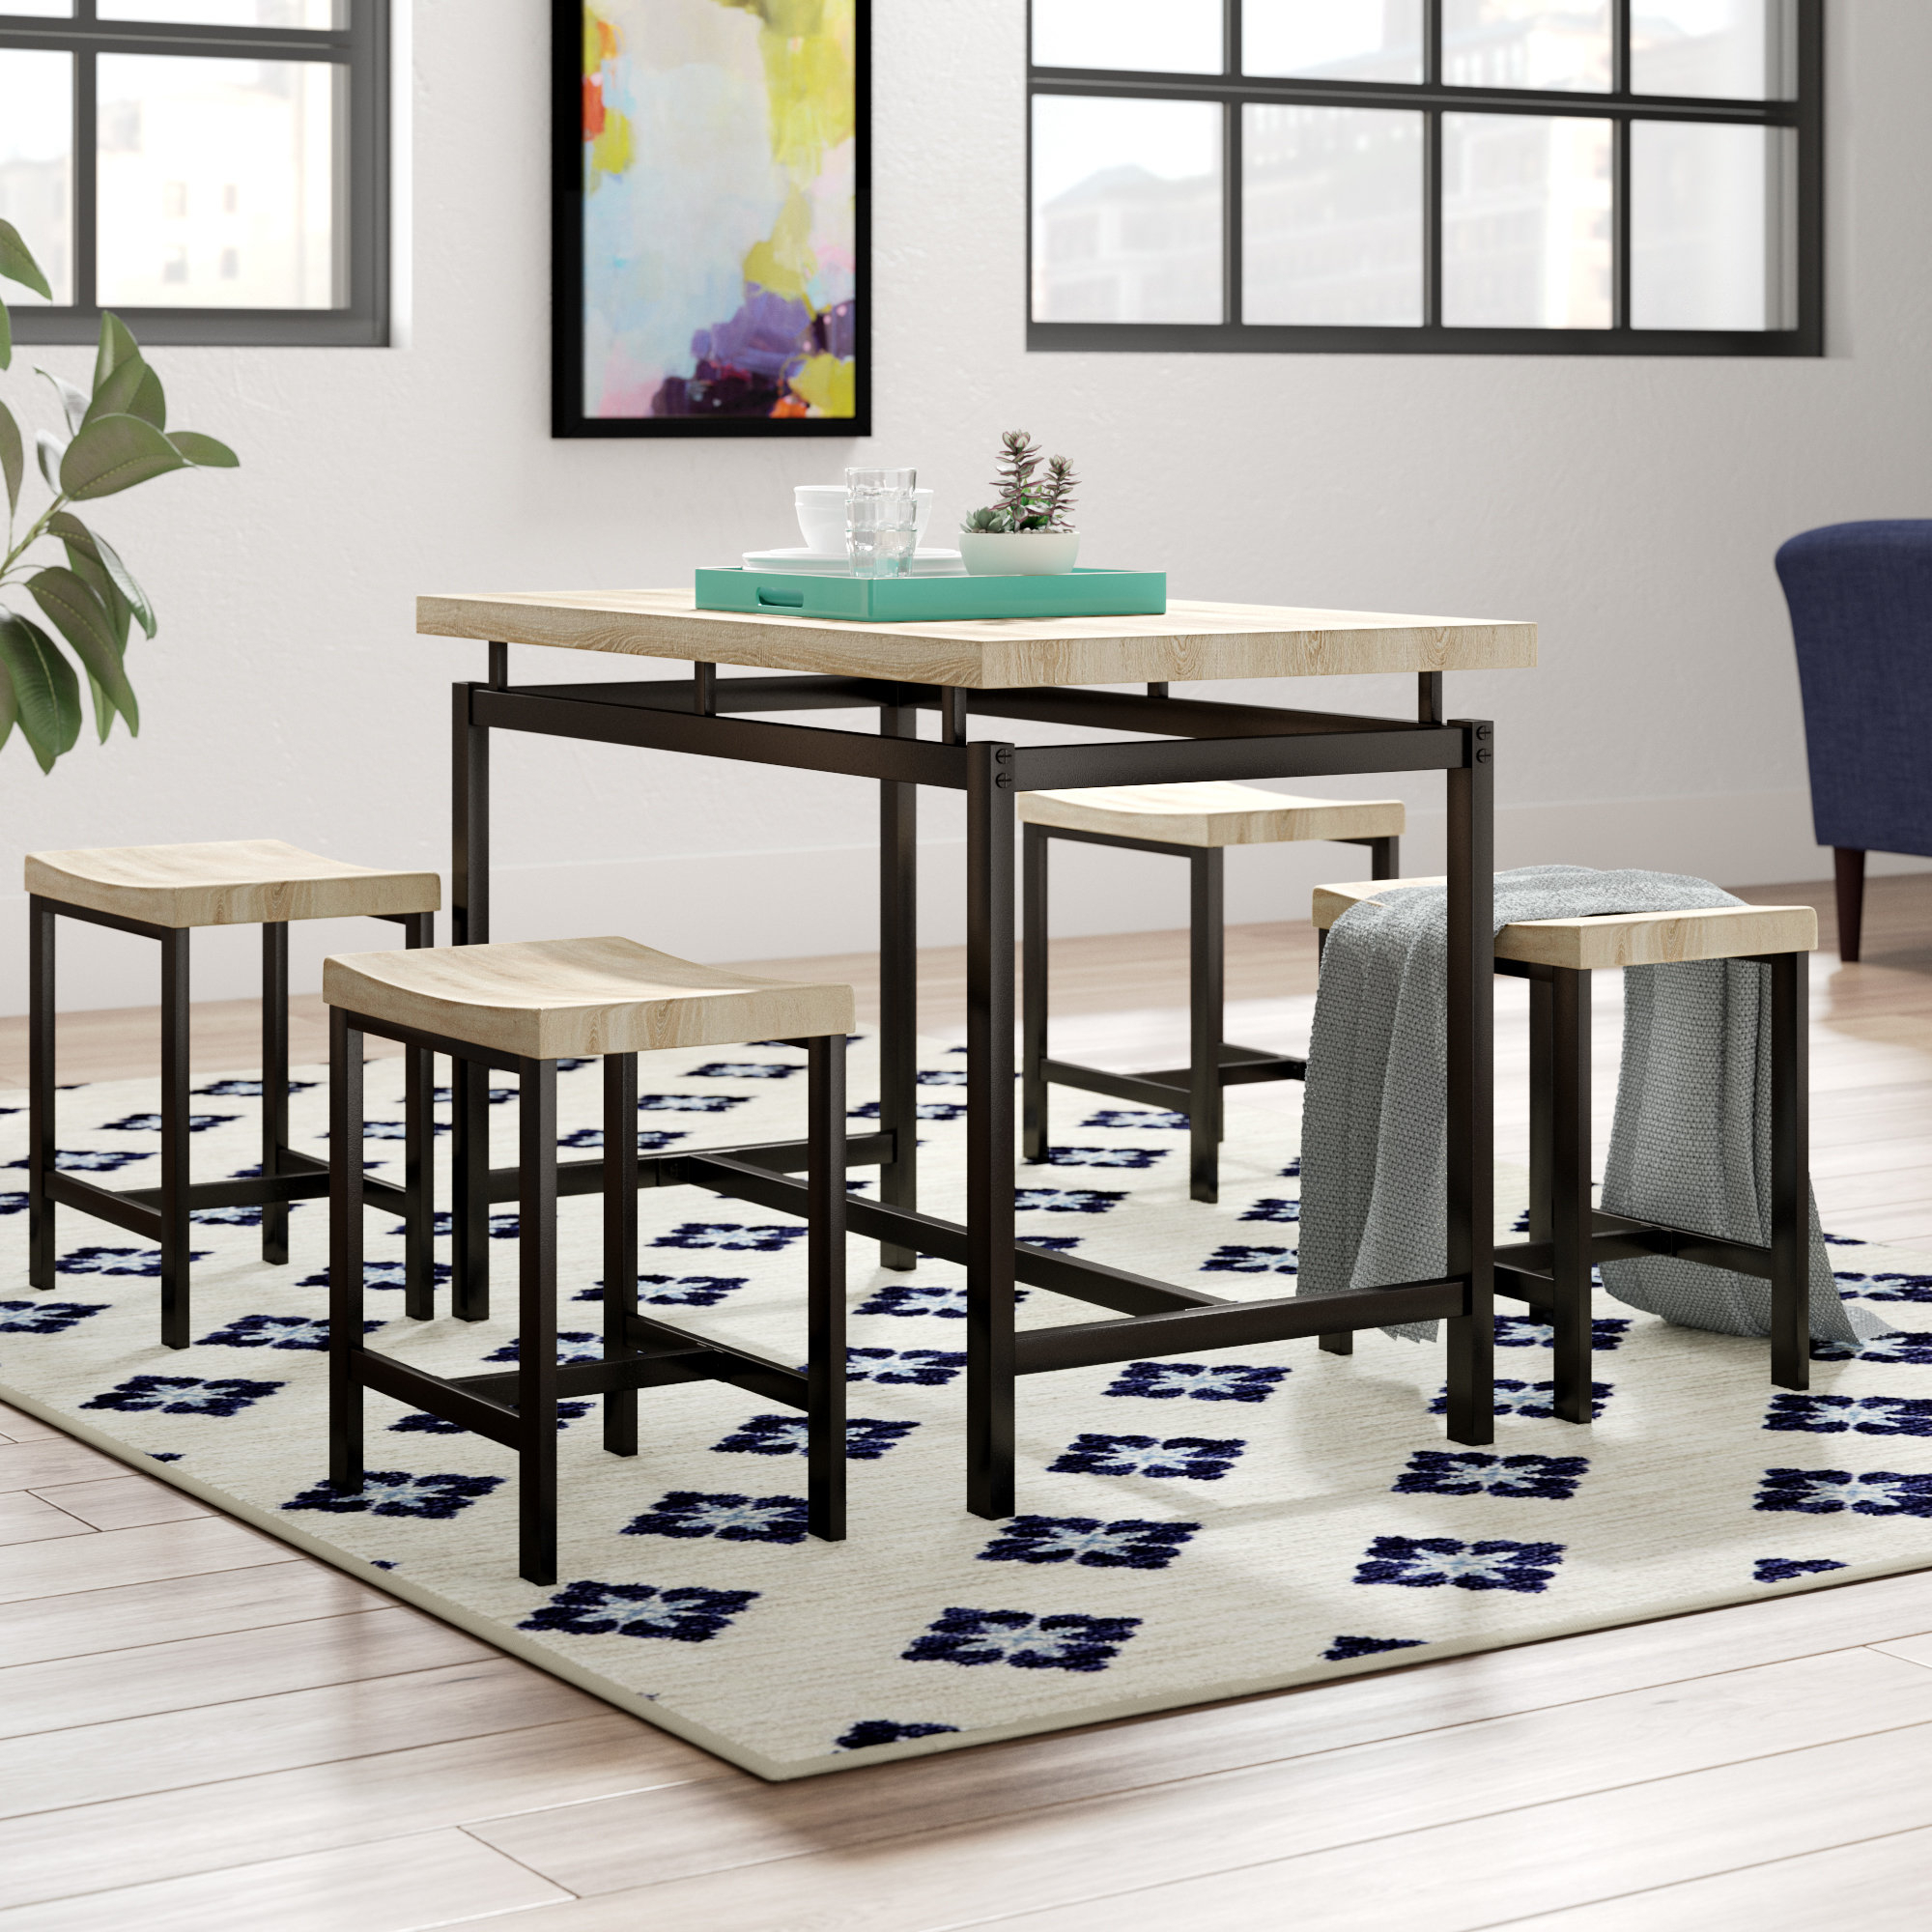 Wayfair With Current Weatherholt Dining Tables (View 8 of 25)